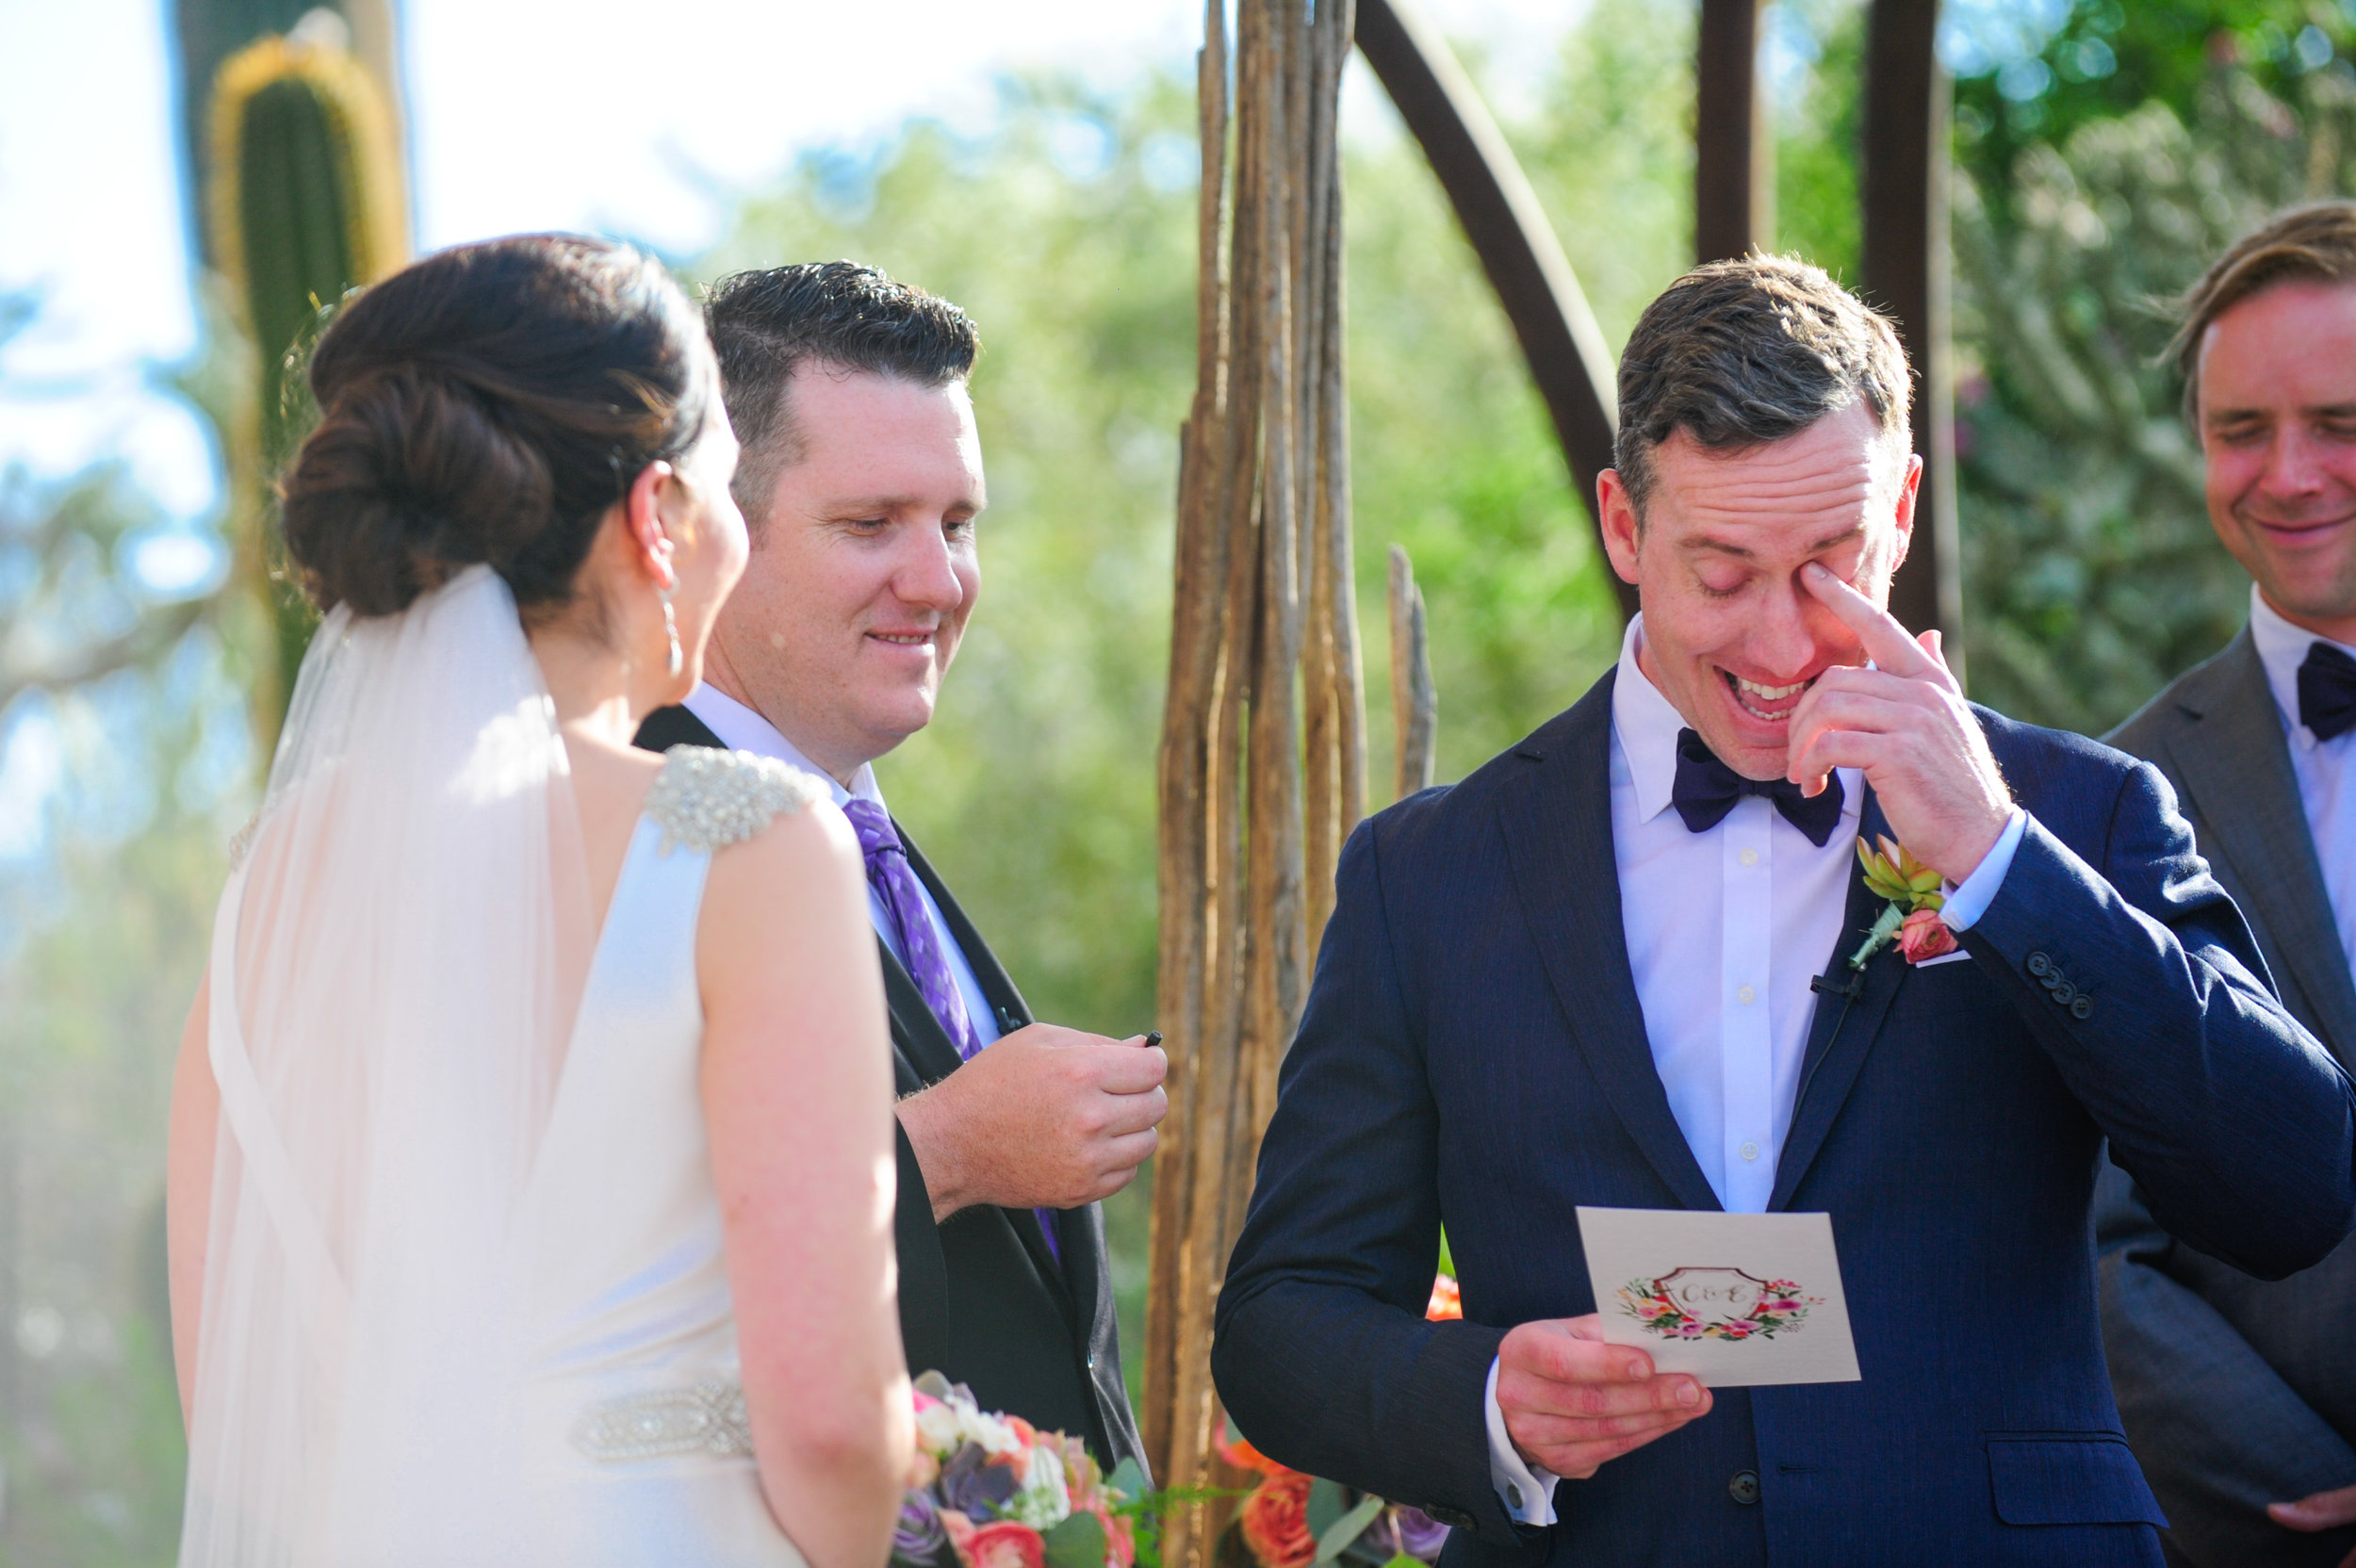 16 bride and groom vows bride and groom at the alter bride and groom exchanging vows Mod Wed Photography Life Design Events.jpg